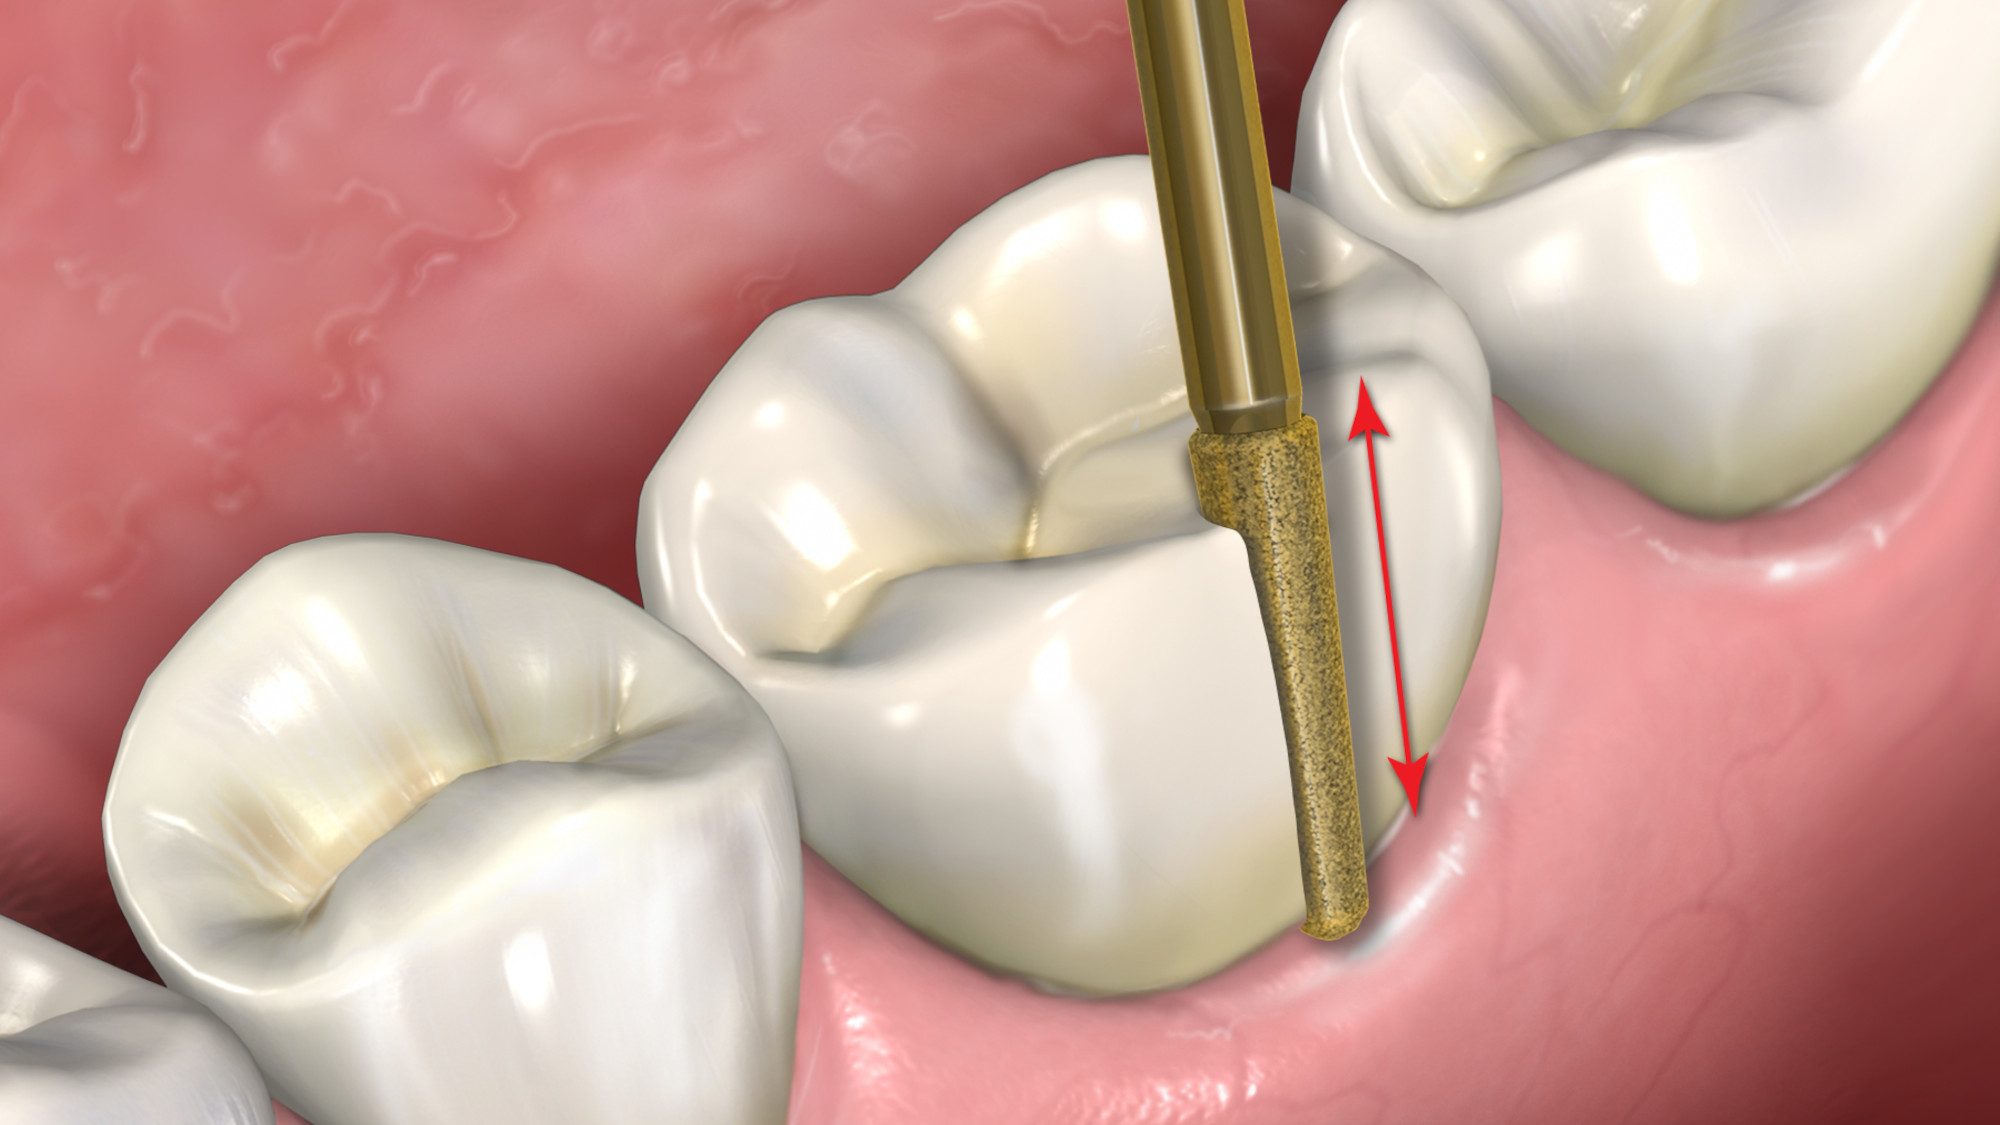 Eliminating the challenges of crown removal or endodontic access through restorations